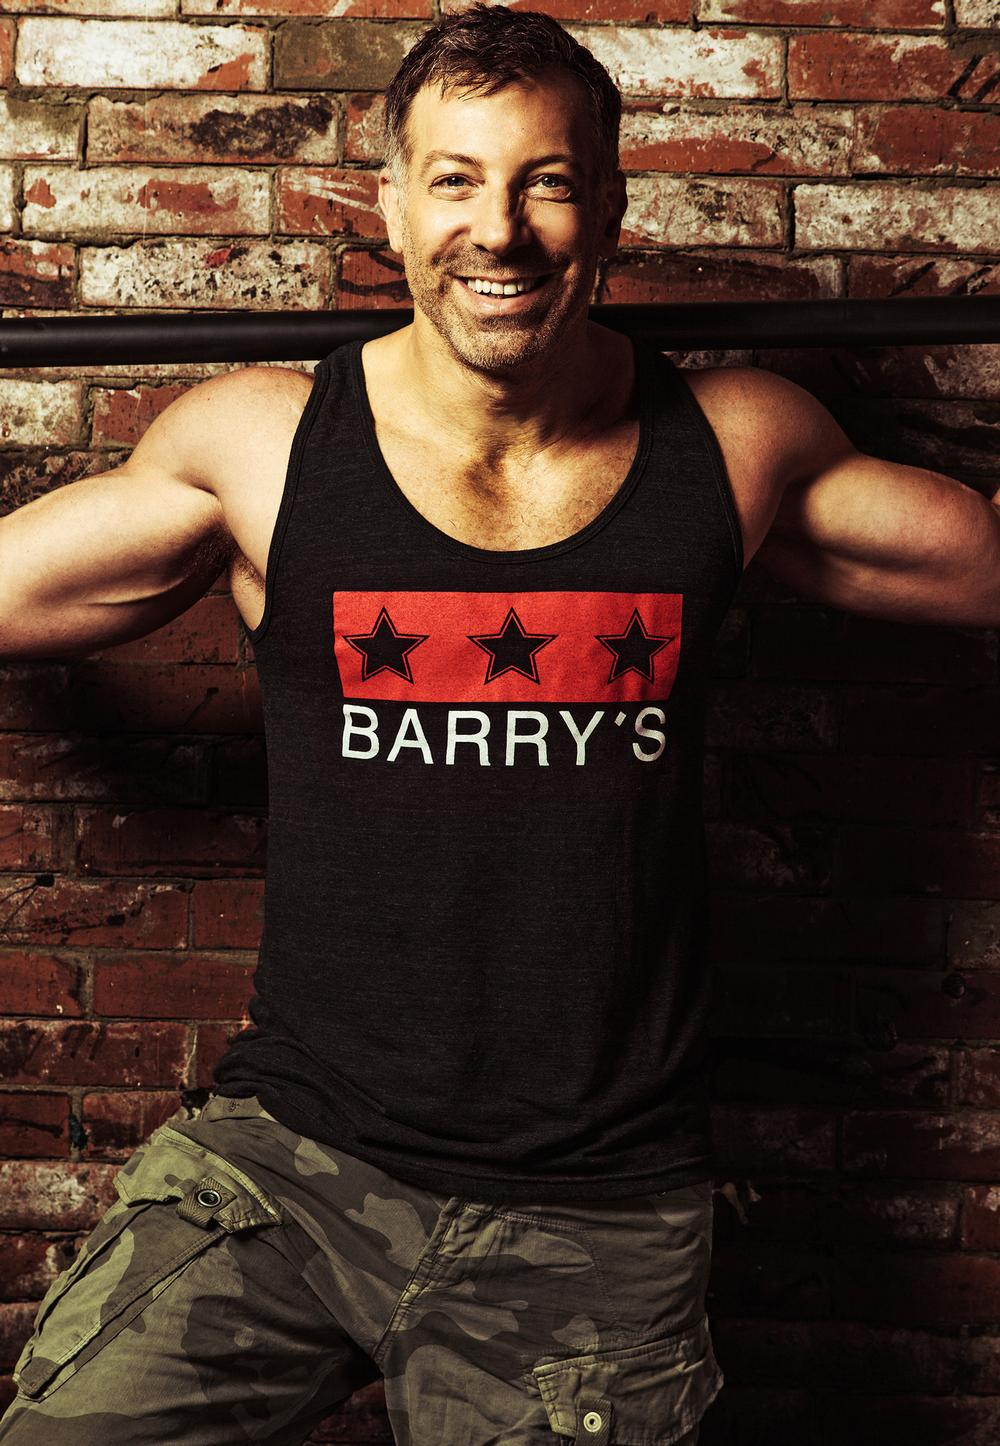 Founder Barry Jay was ahead of the pack when he founded his boutique fitness concept in 1998